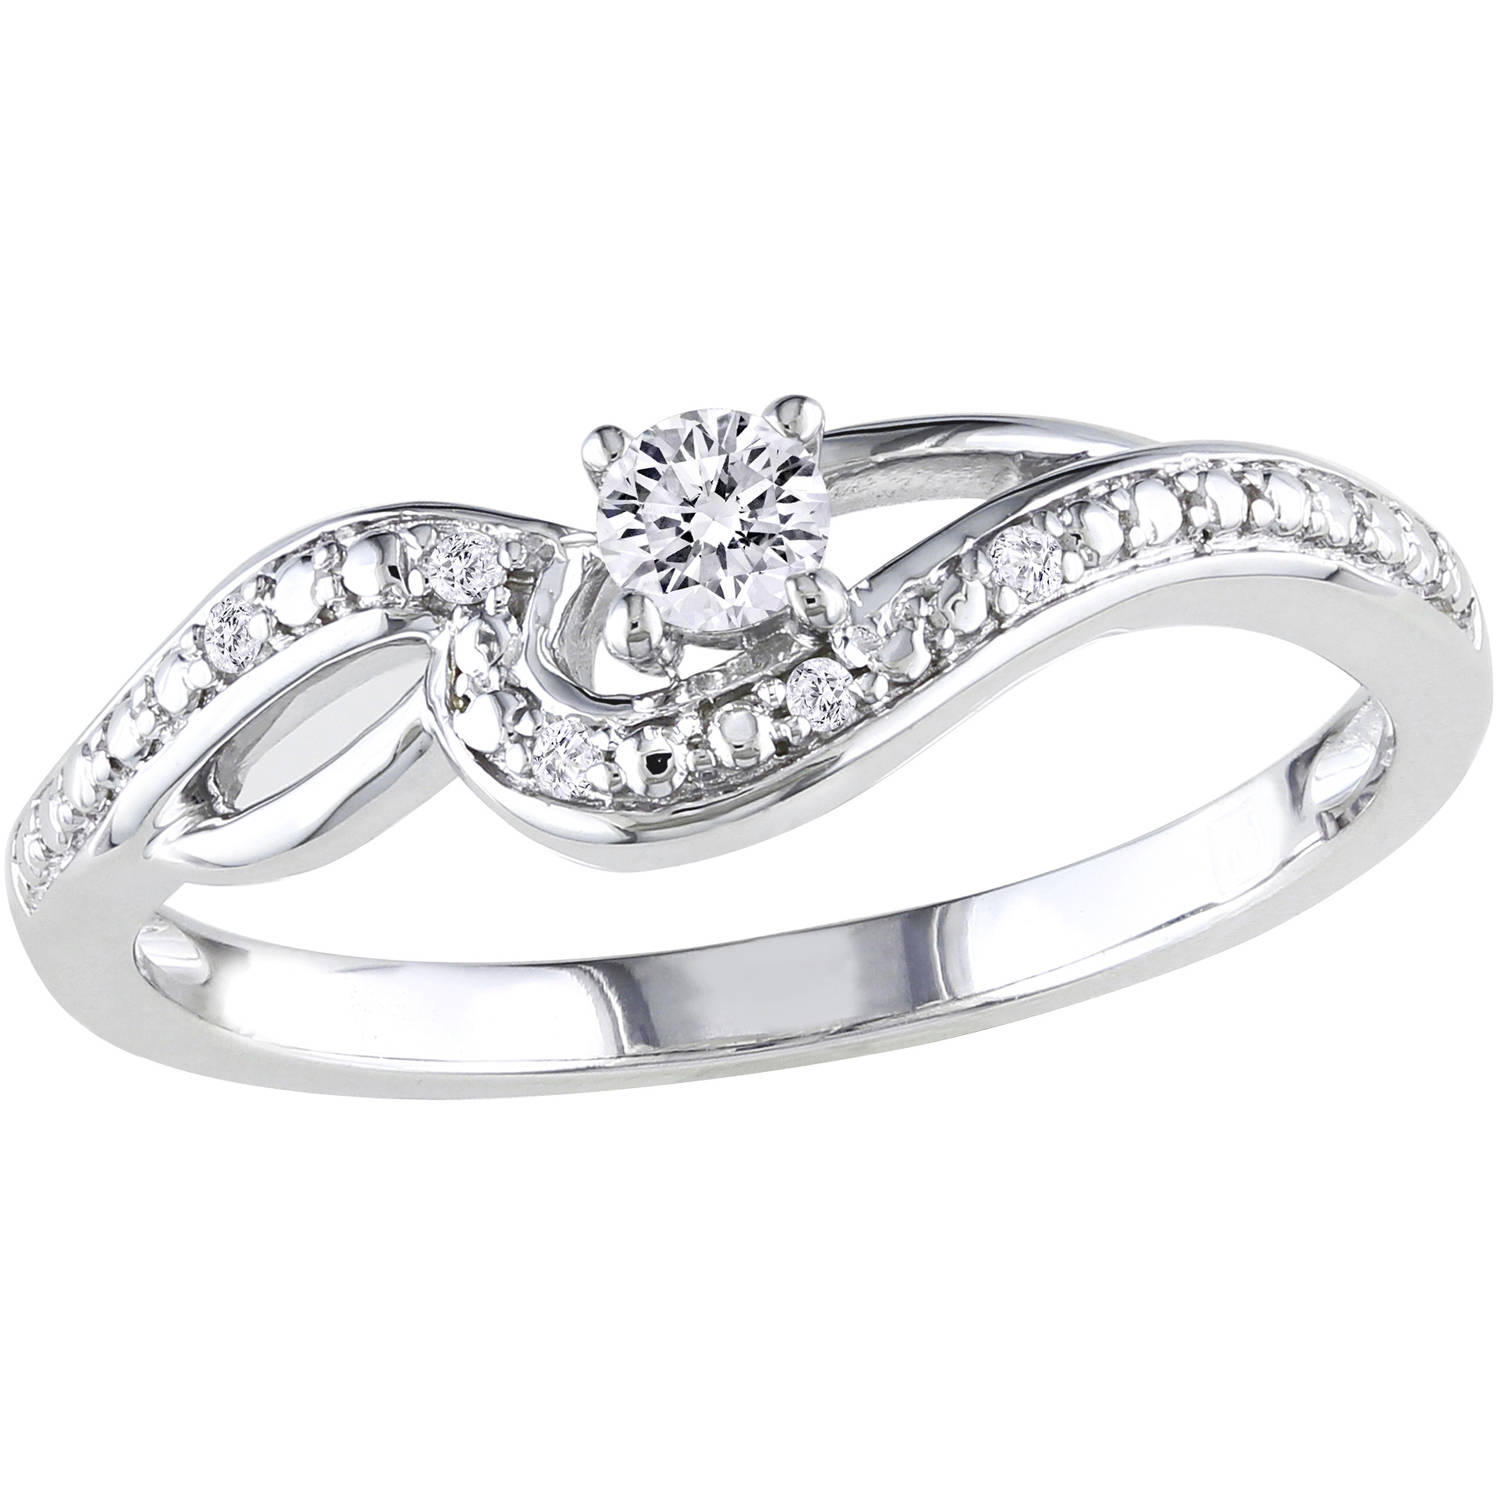 Miabella 1/7 Carat T.W. Diamond 10kt White Gold Bypass Engagement Ring